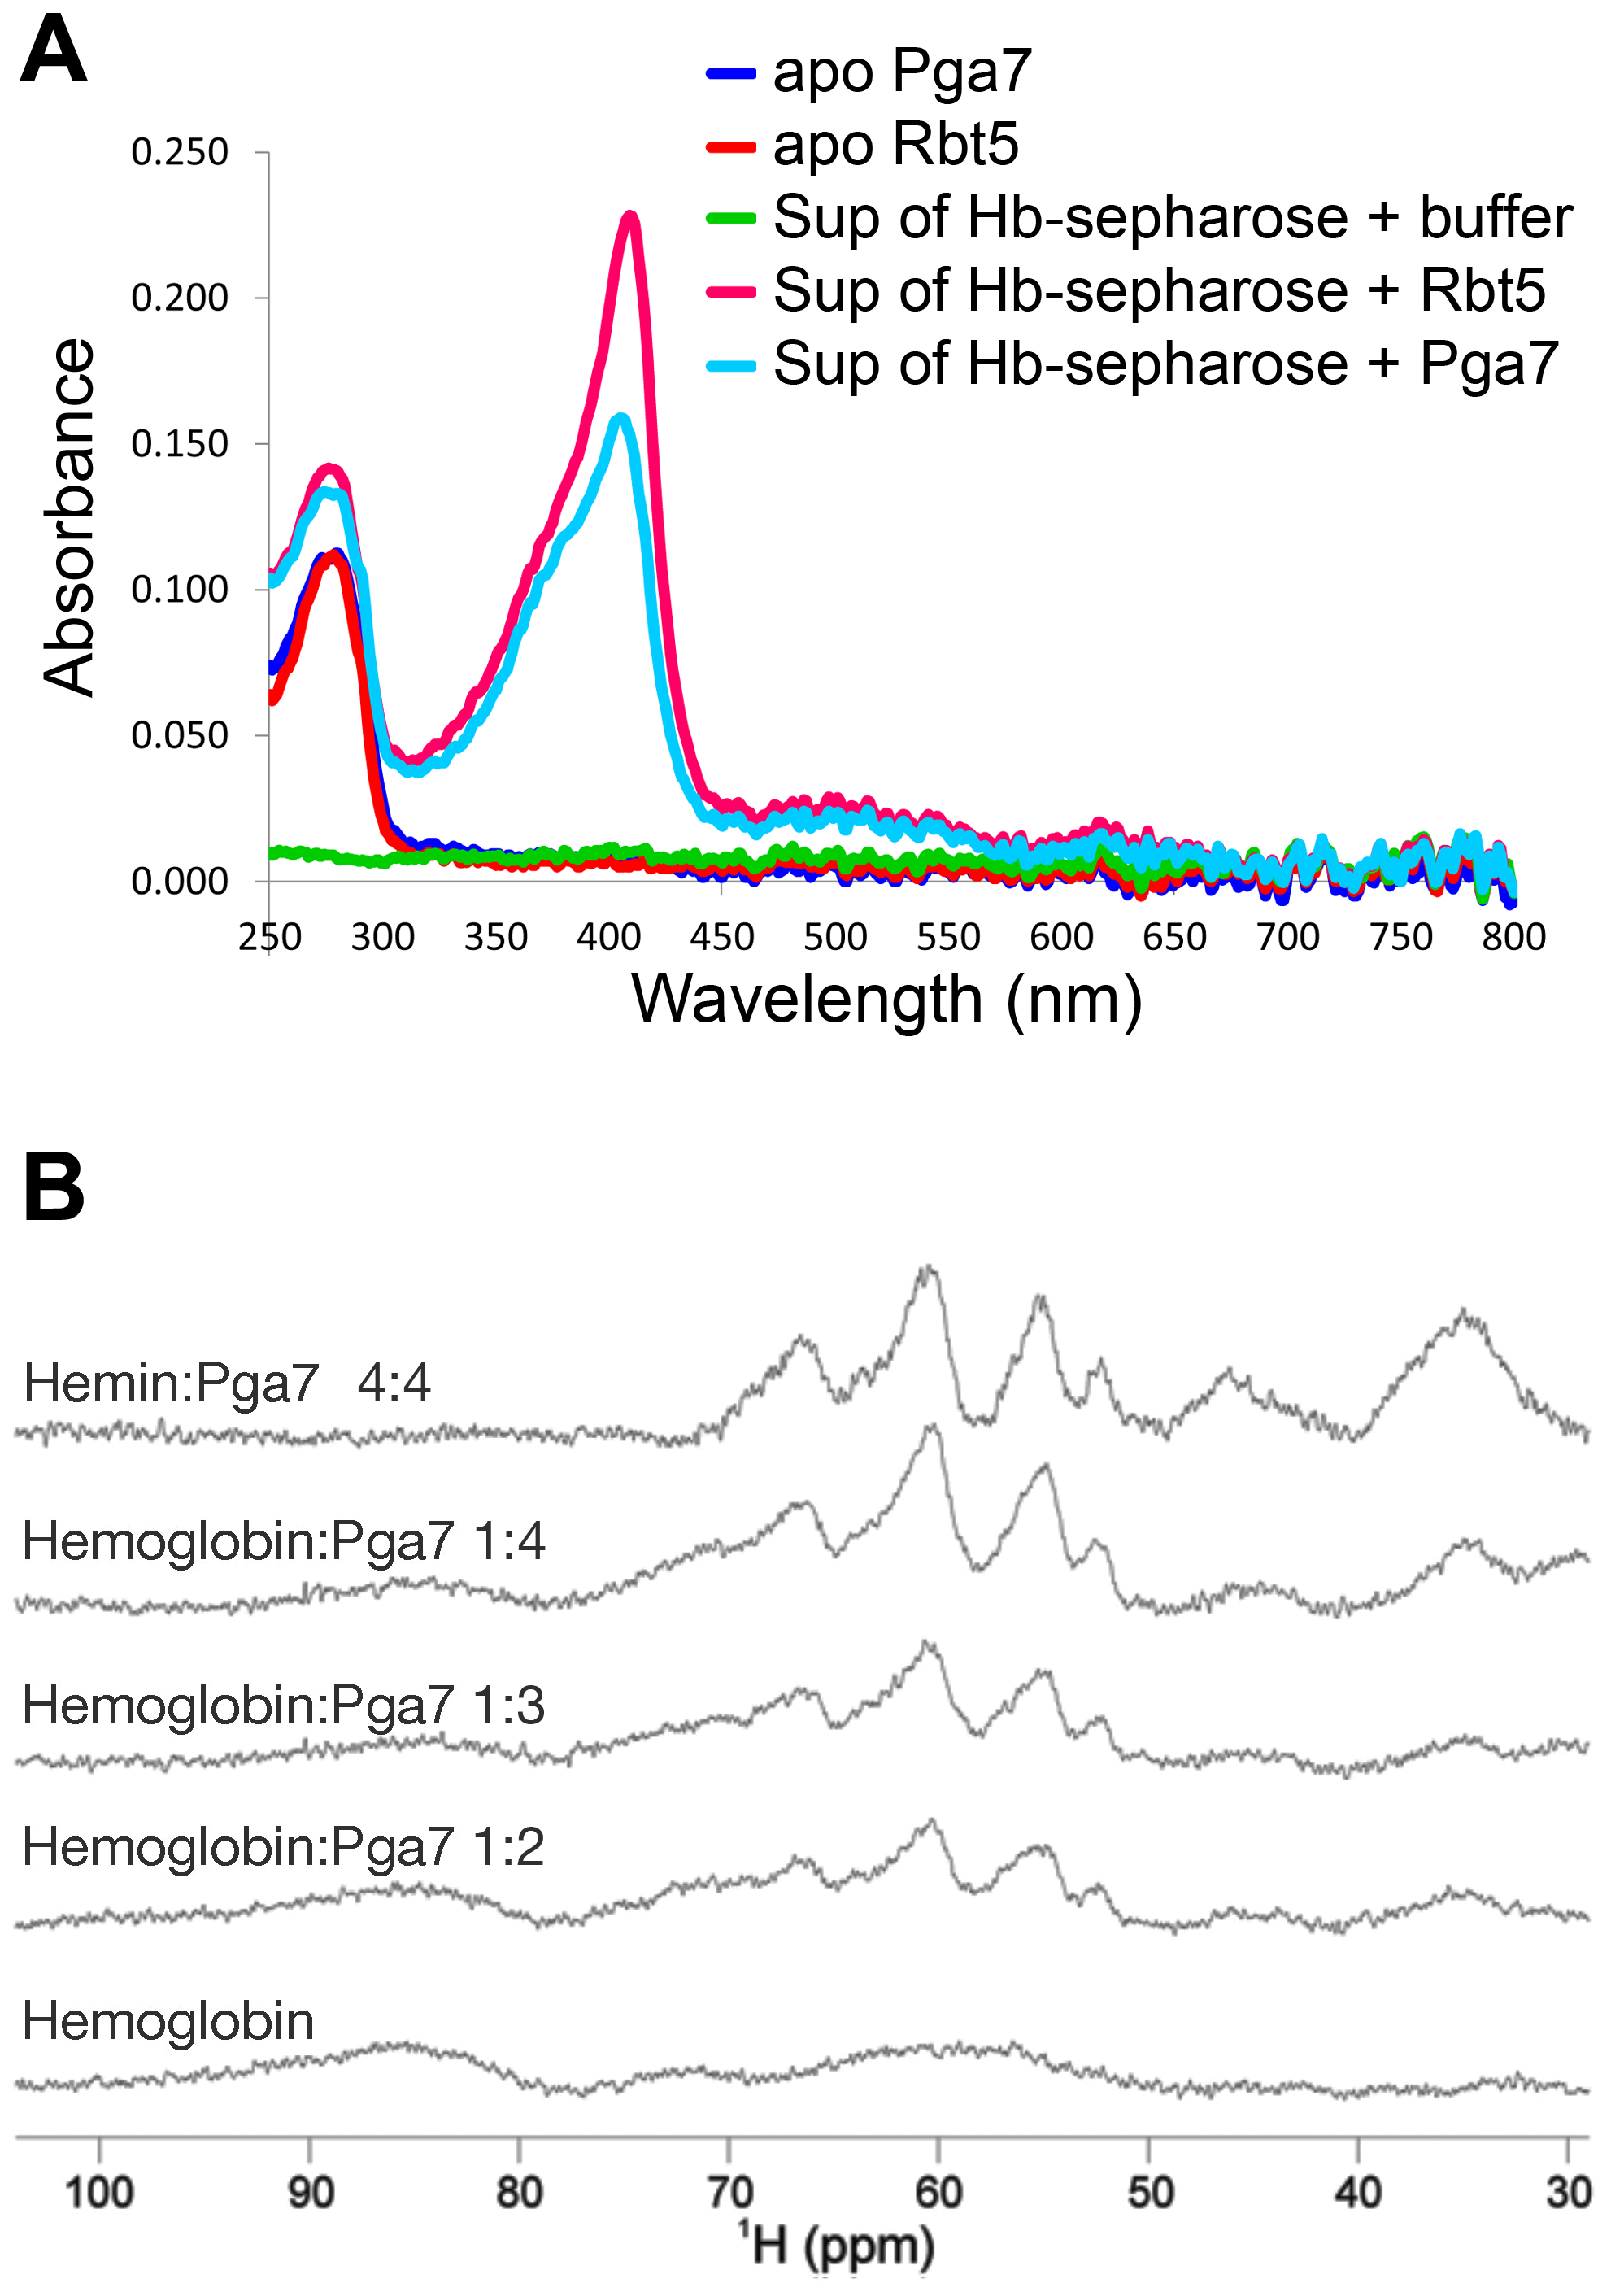 Pga7 and Rbt5 can extract heme from hemoglobin.